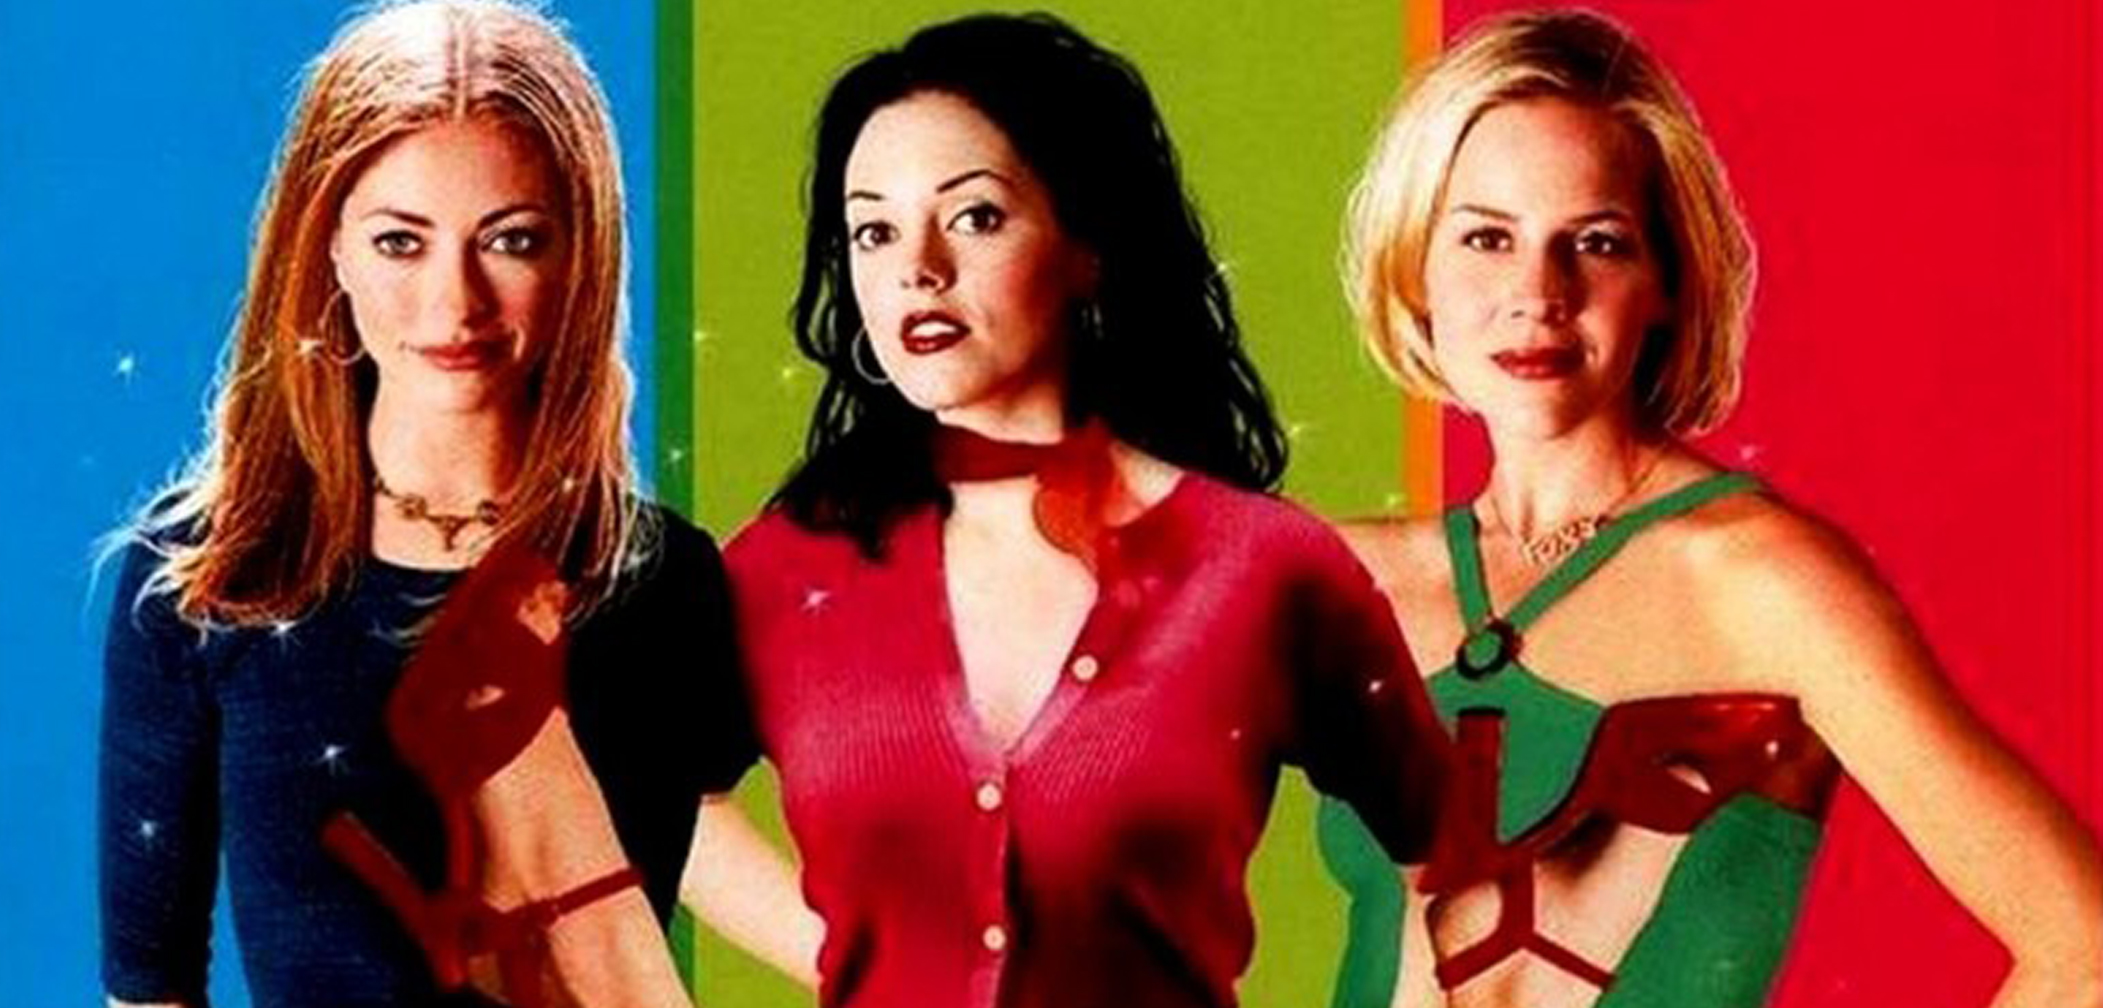 20 GIFs to Celebrate 'Jawbreaker' Becoming a TV Series